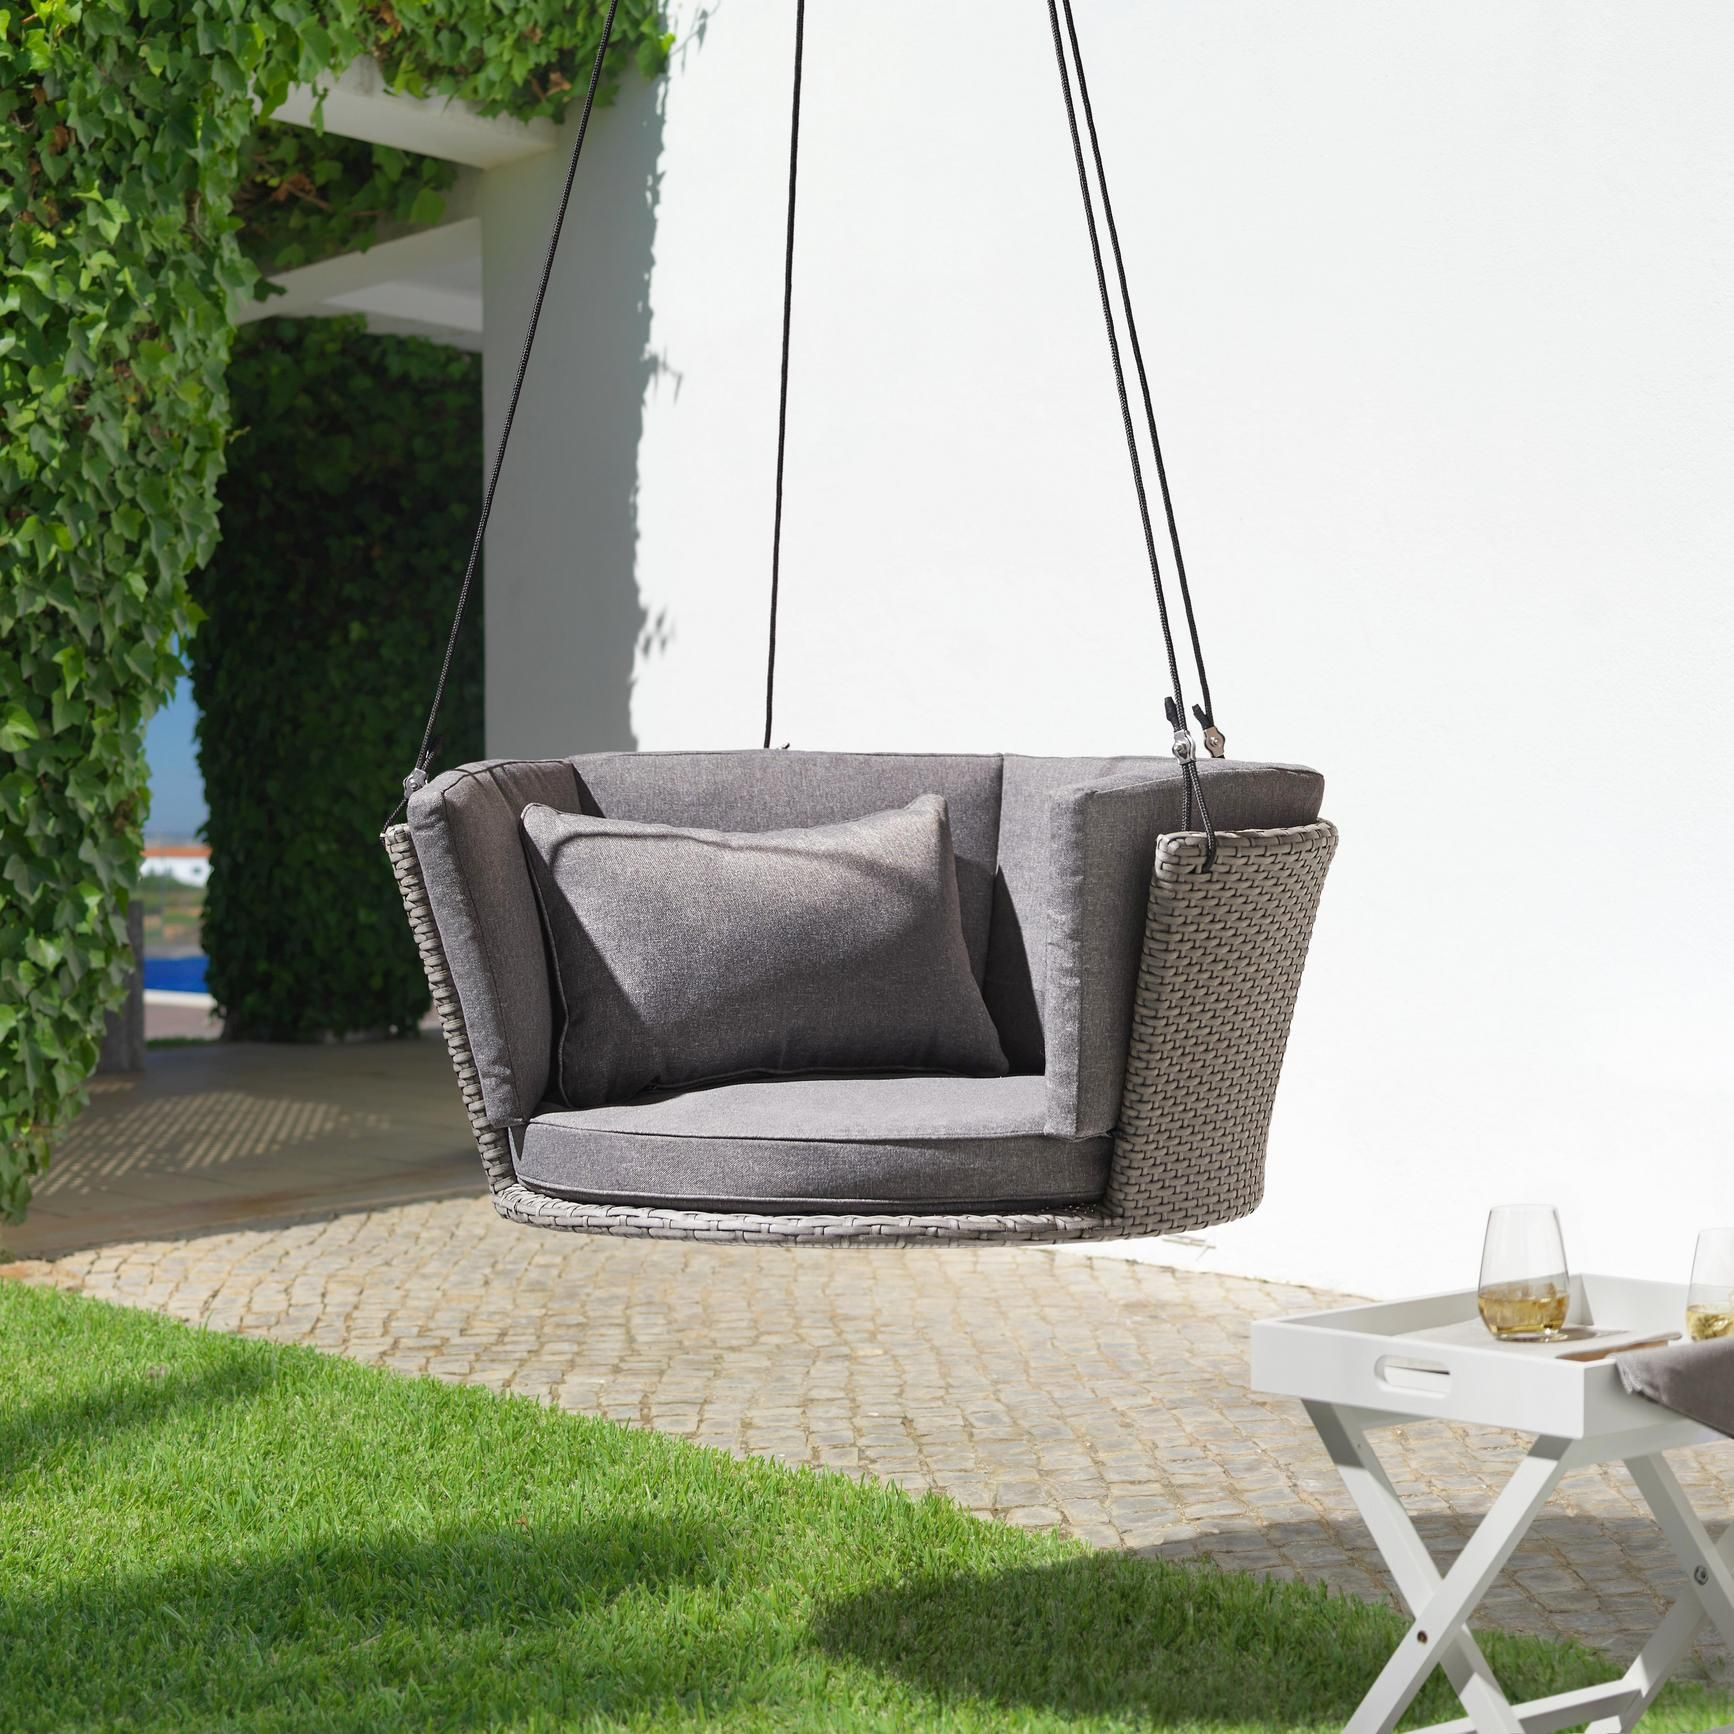 Hängesessel Coby Home Decor Swinging Chair Outdoor Decor Und